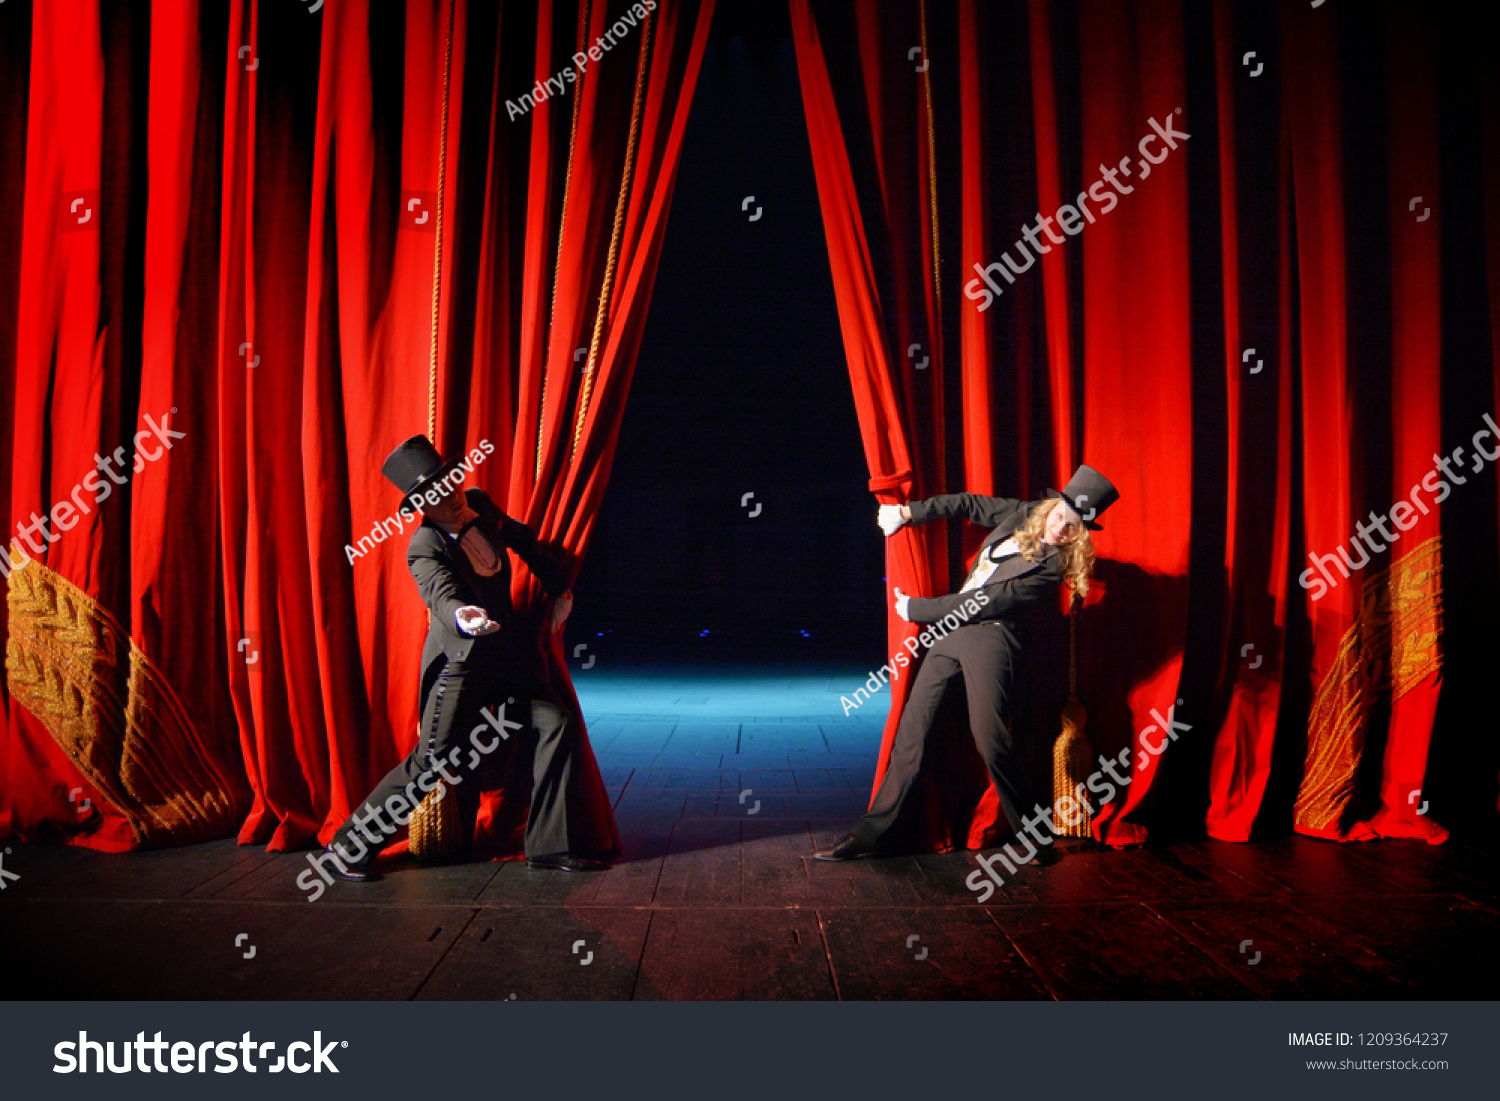 Actor and actress in tuxedos open theater curtain #1209364237